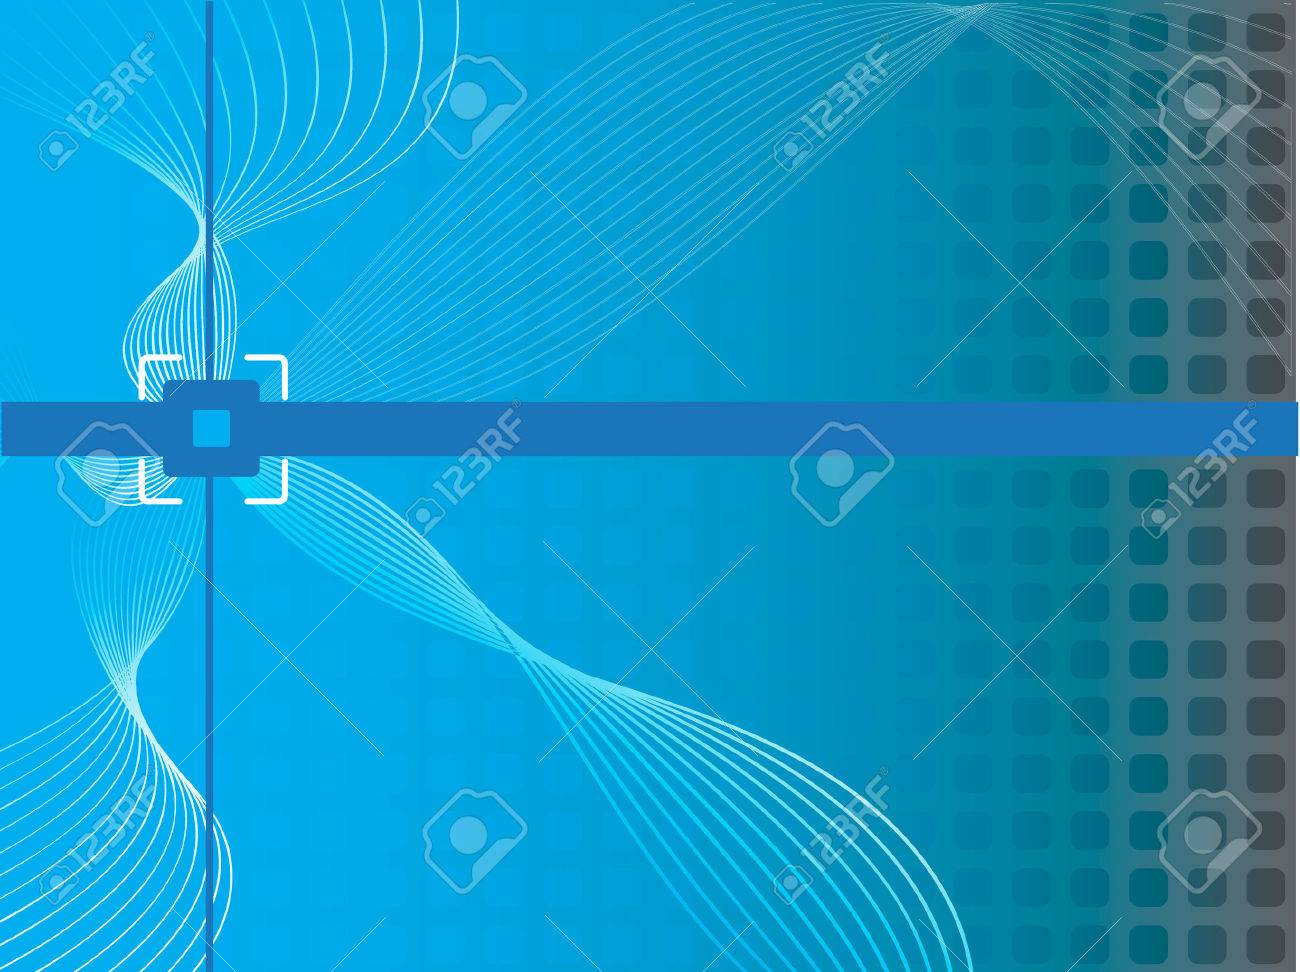 Vector - Wavy wireframe mesh on a retro background. For background use, concept: digital age. Stock Vector - 1862284